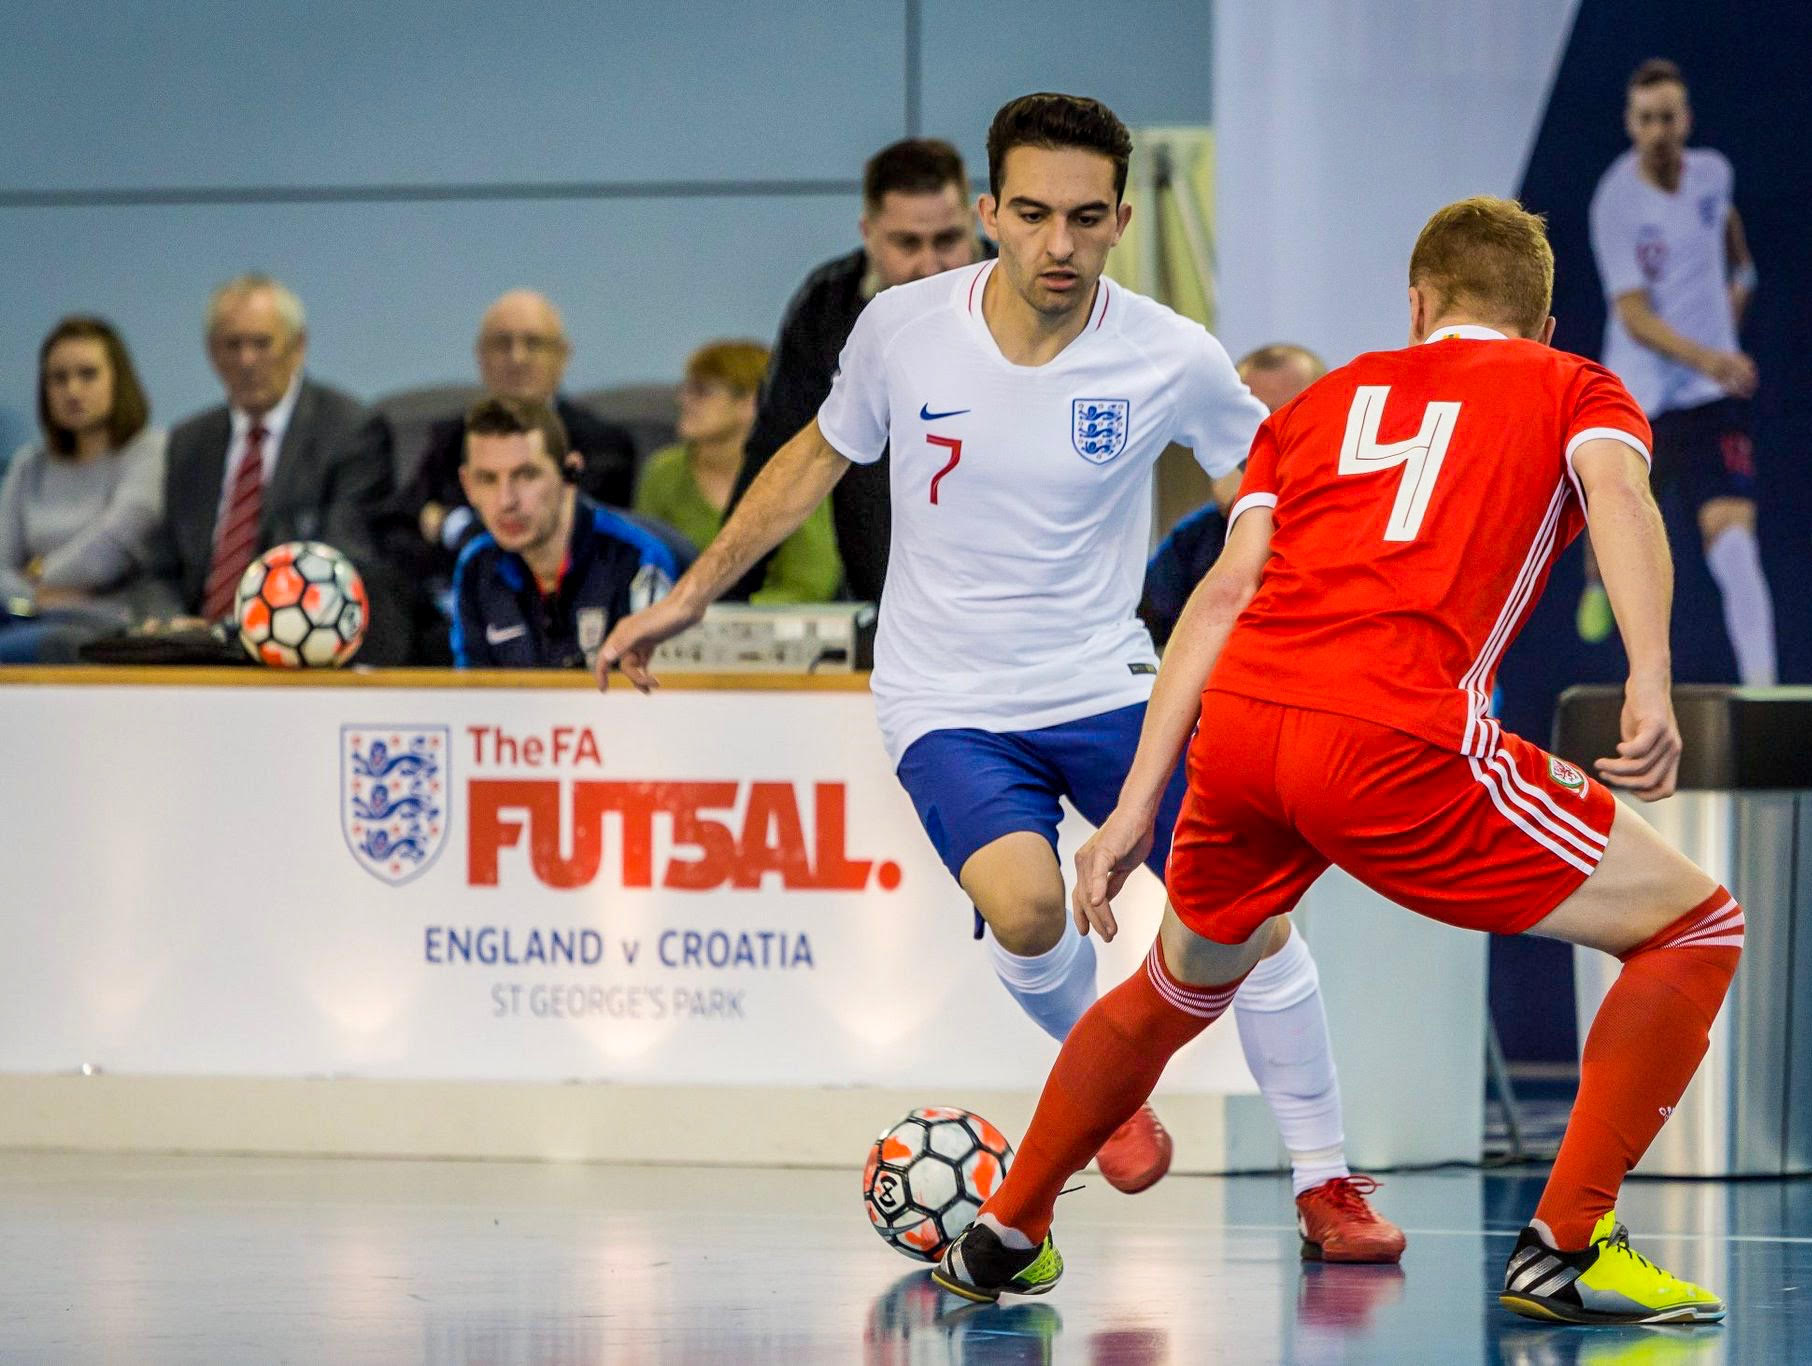 Bloomsbury Football Foundation a benchmark for community engagement for amateur futsal clubs